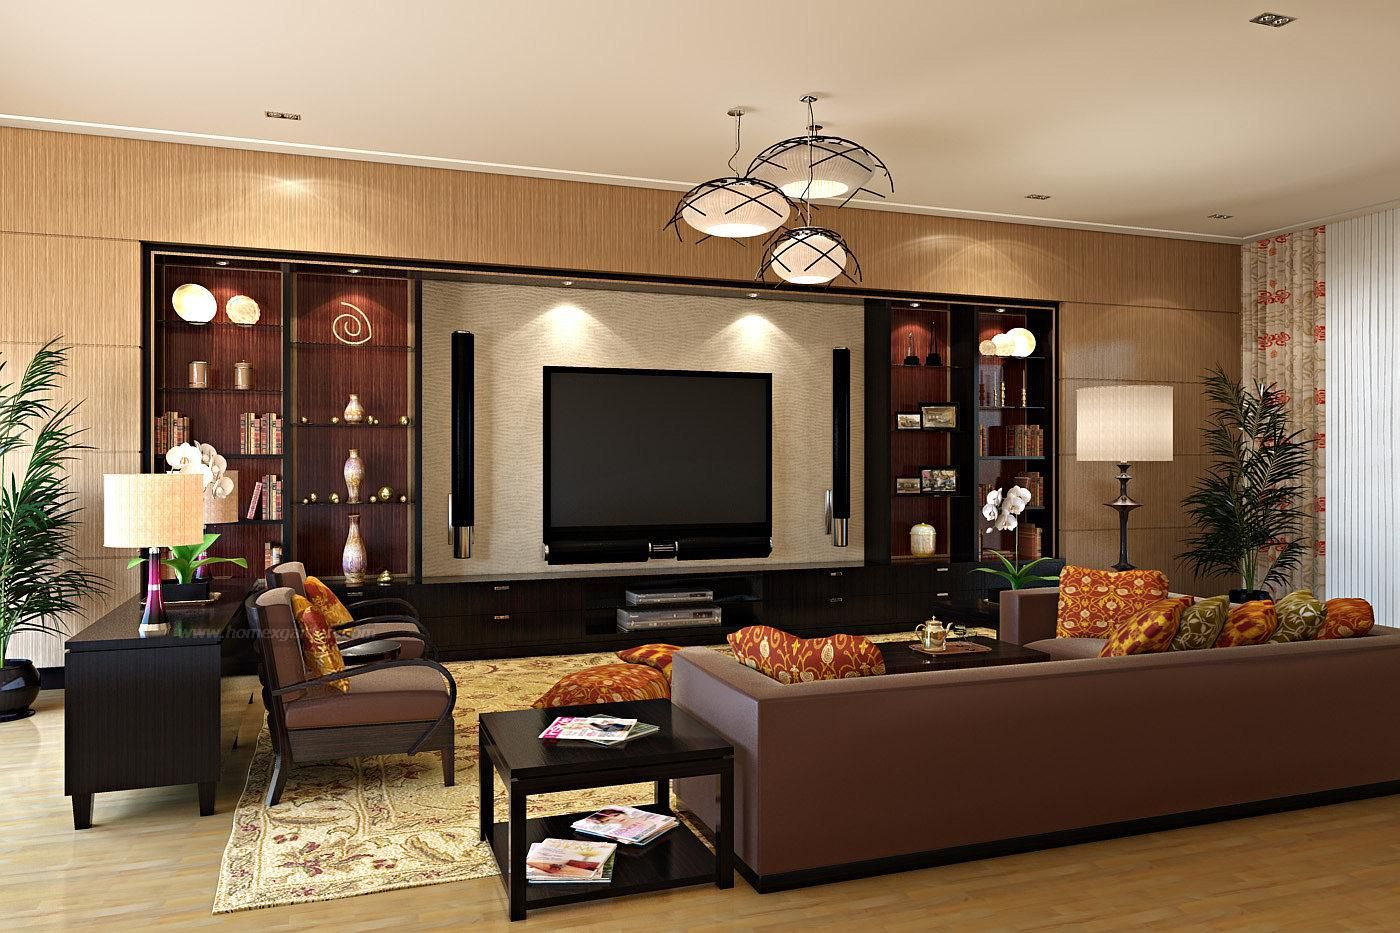 Bon Cloth Wall Covering Living Room | Contemporary Brown Living Room Design  Wood Accented Wall Covering .